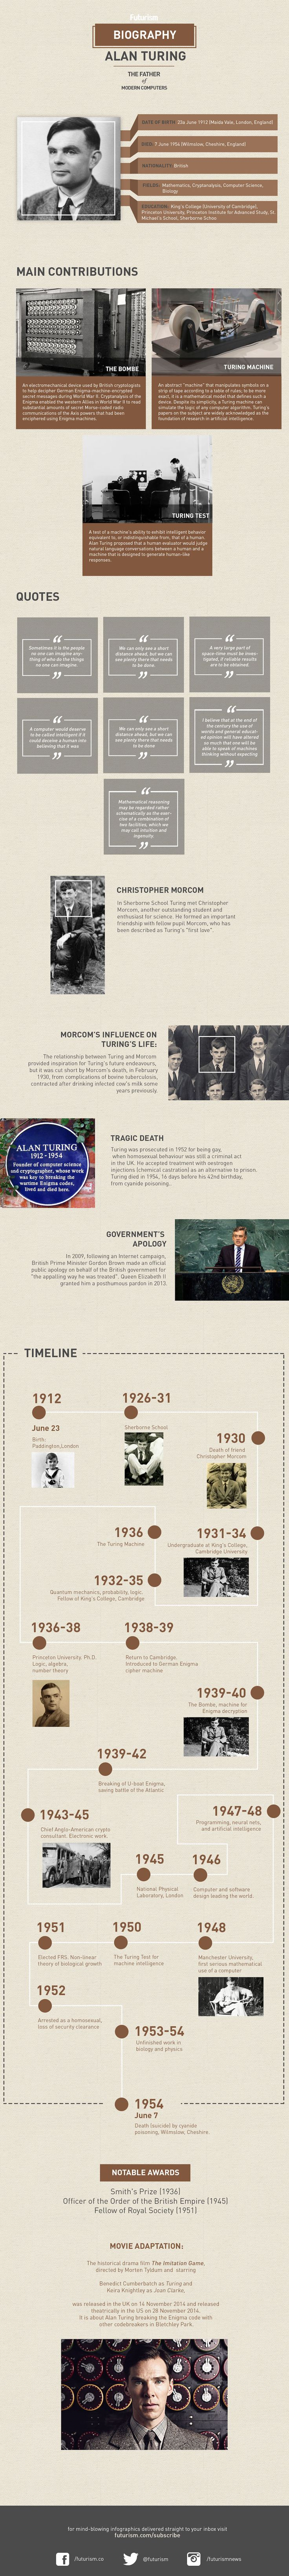 Alan #Turing: The Father of Computer Science [Infographic] A look at the life and times of the world's first codebreaker.